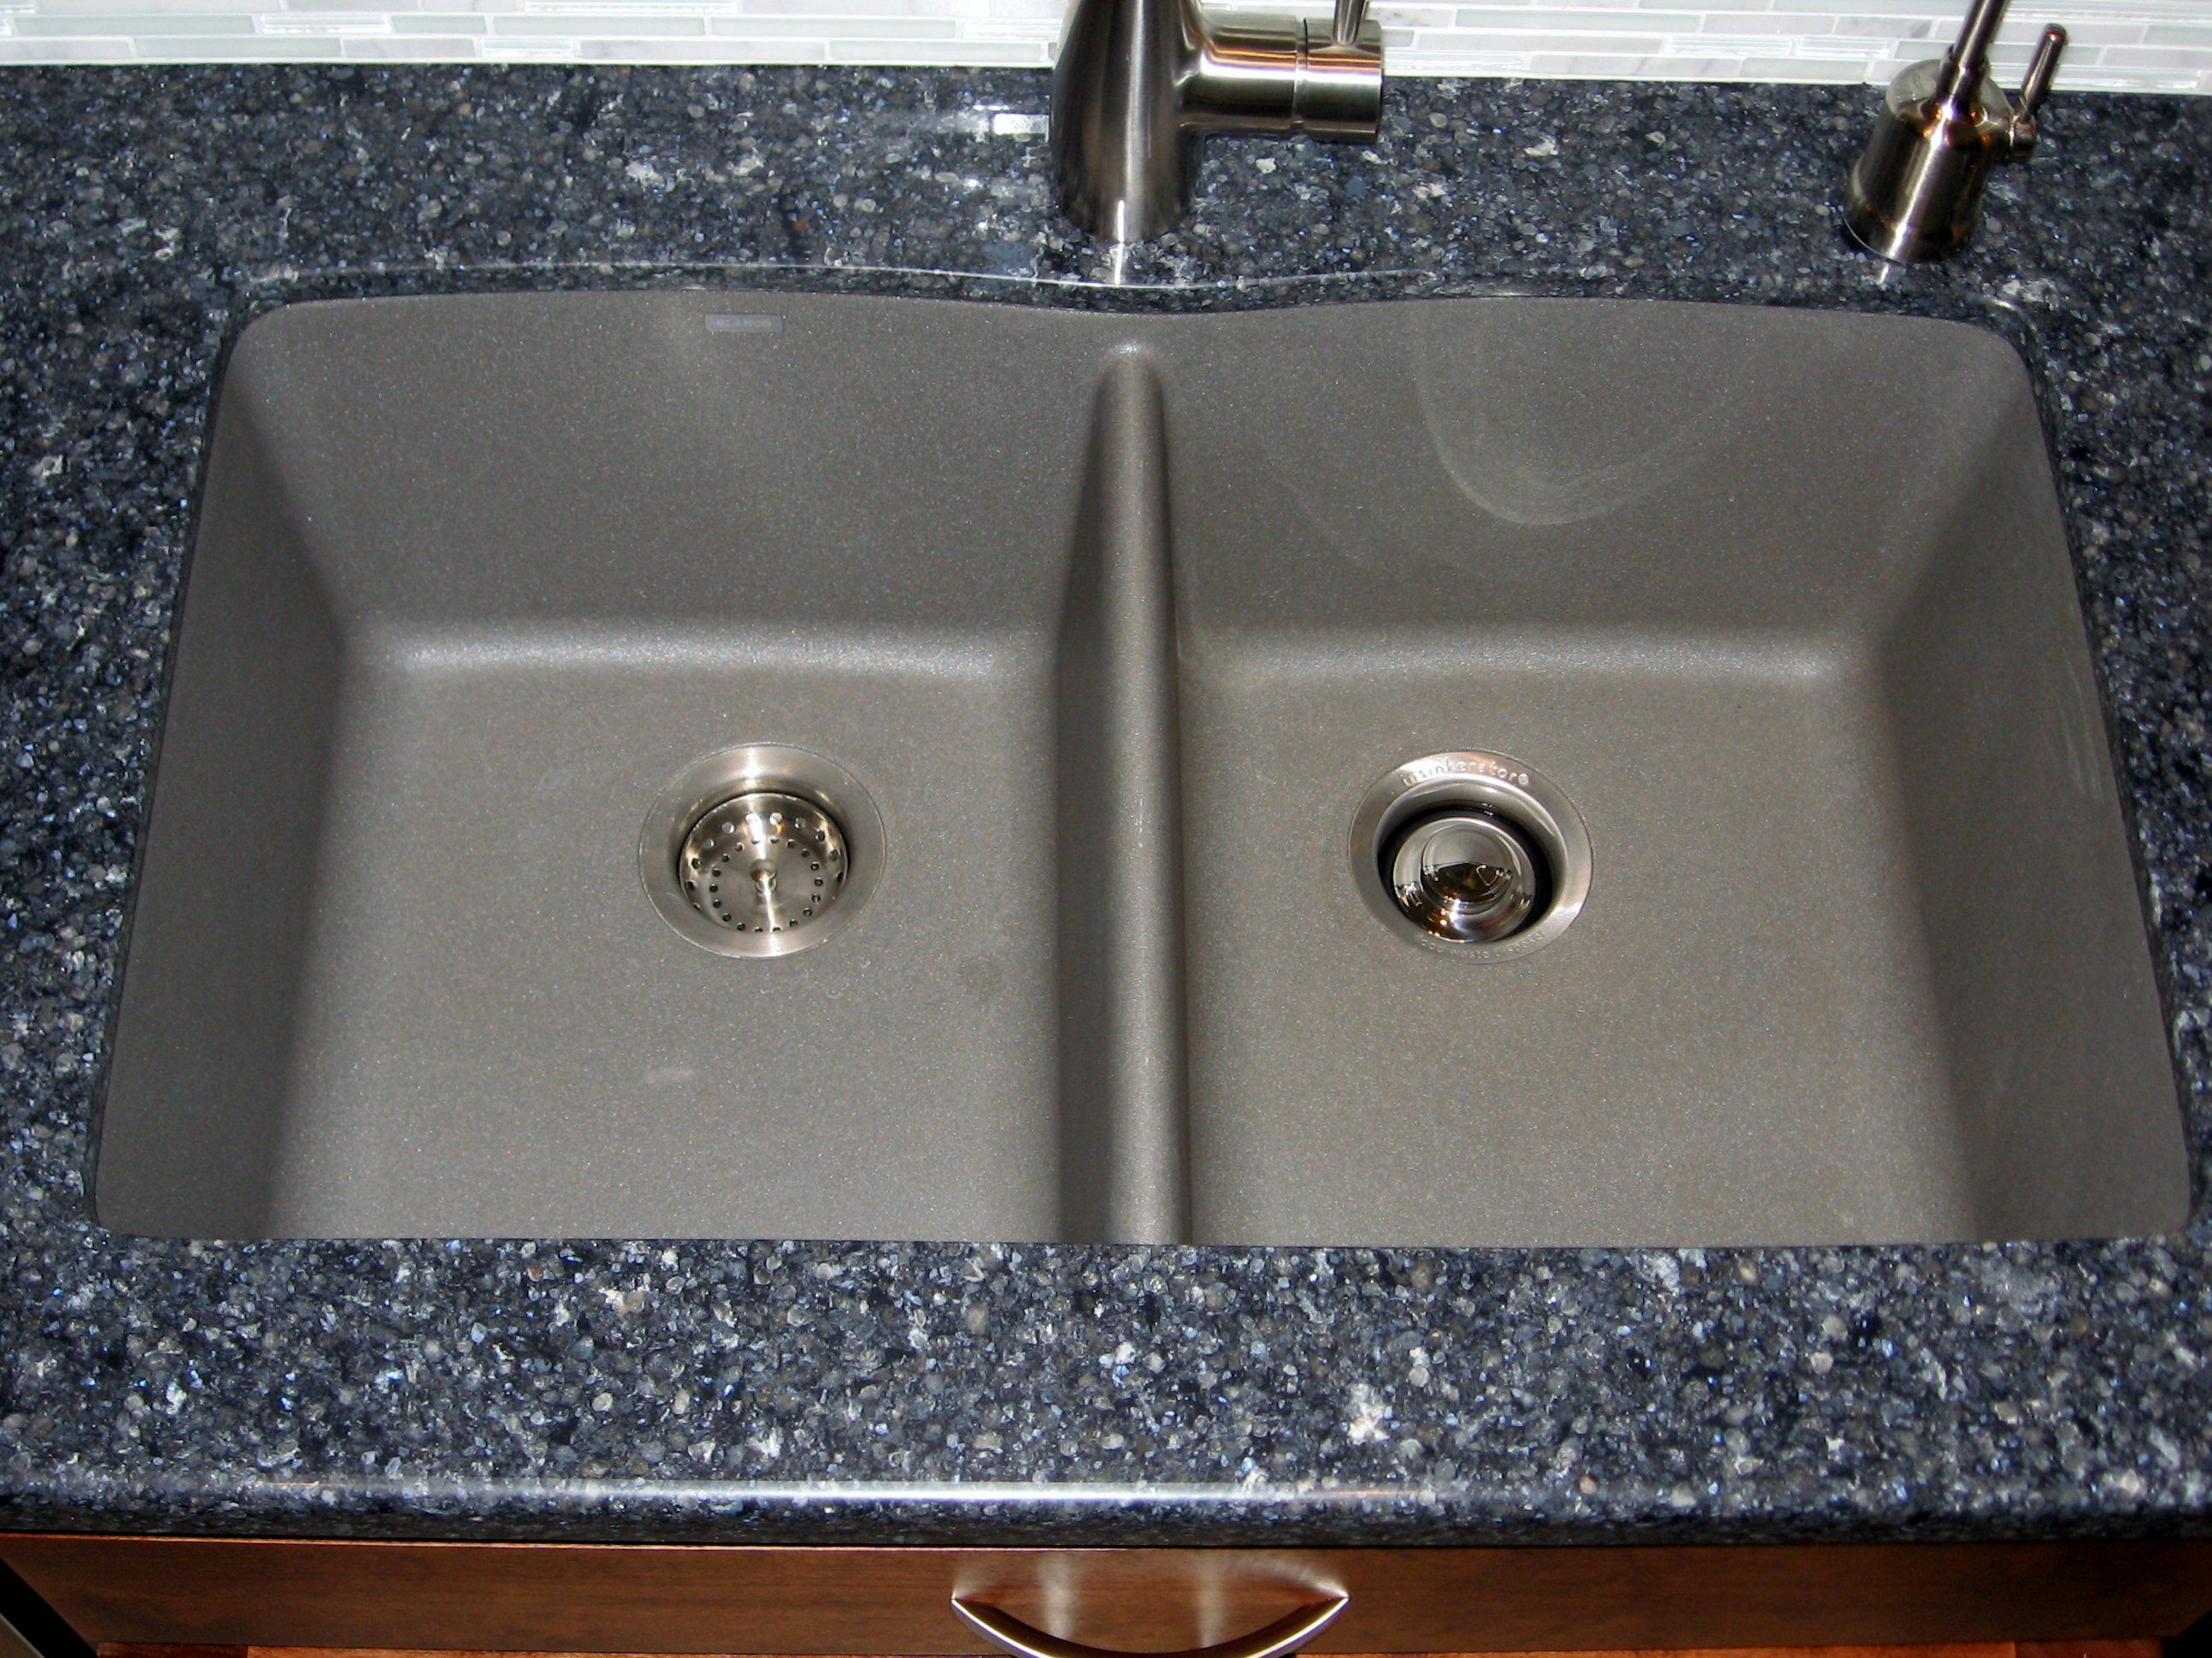 Long Term Review Of The Silgranit Ii Granite Composite Kitchen